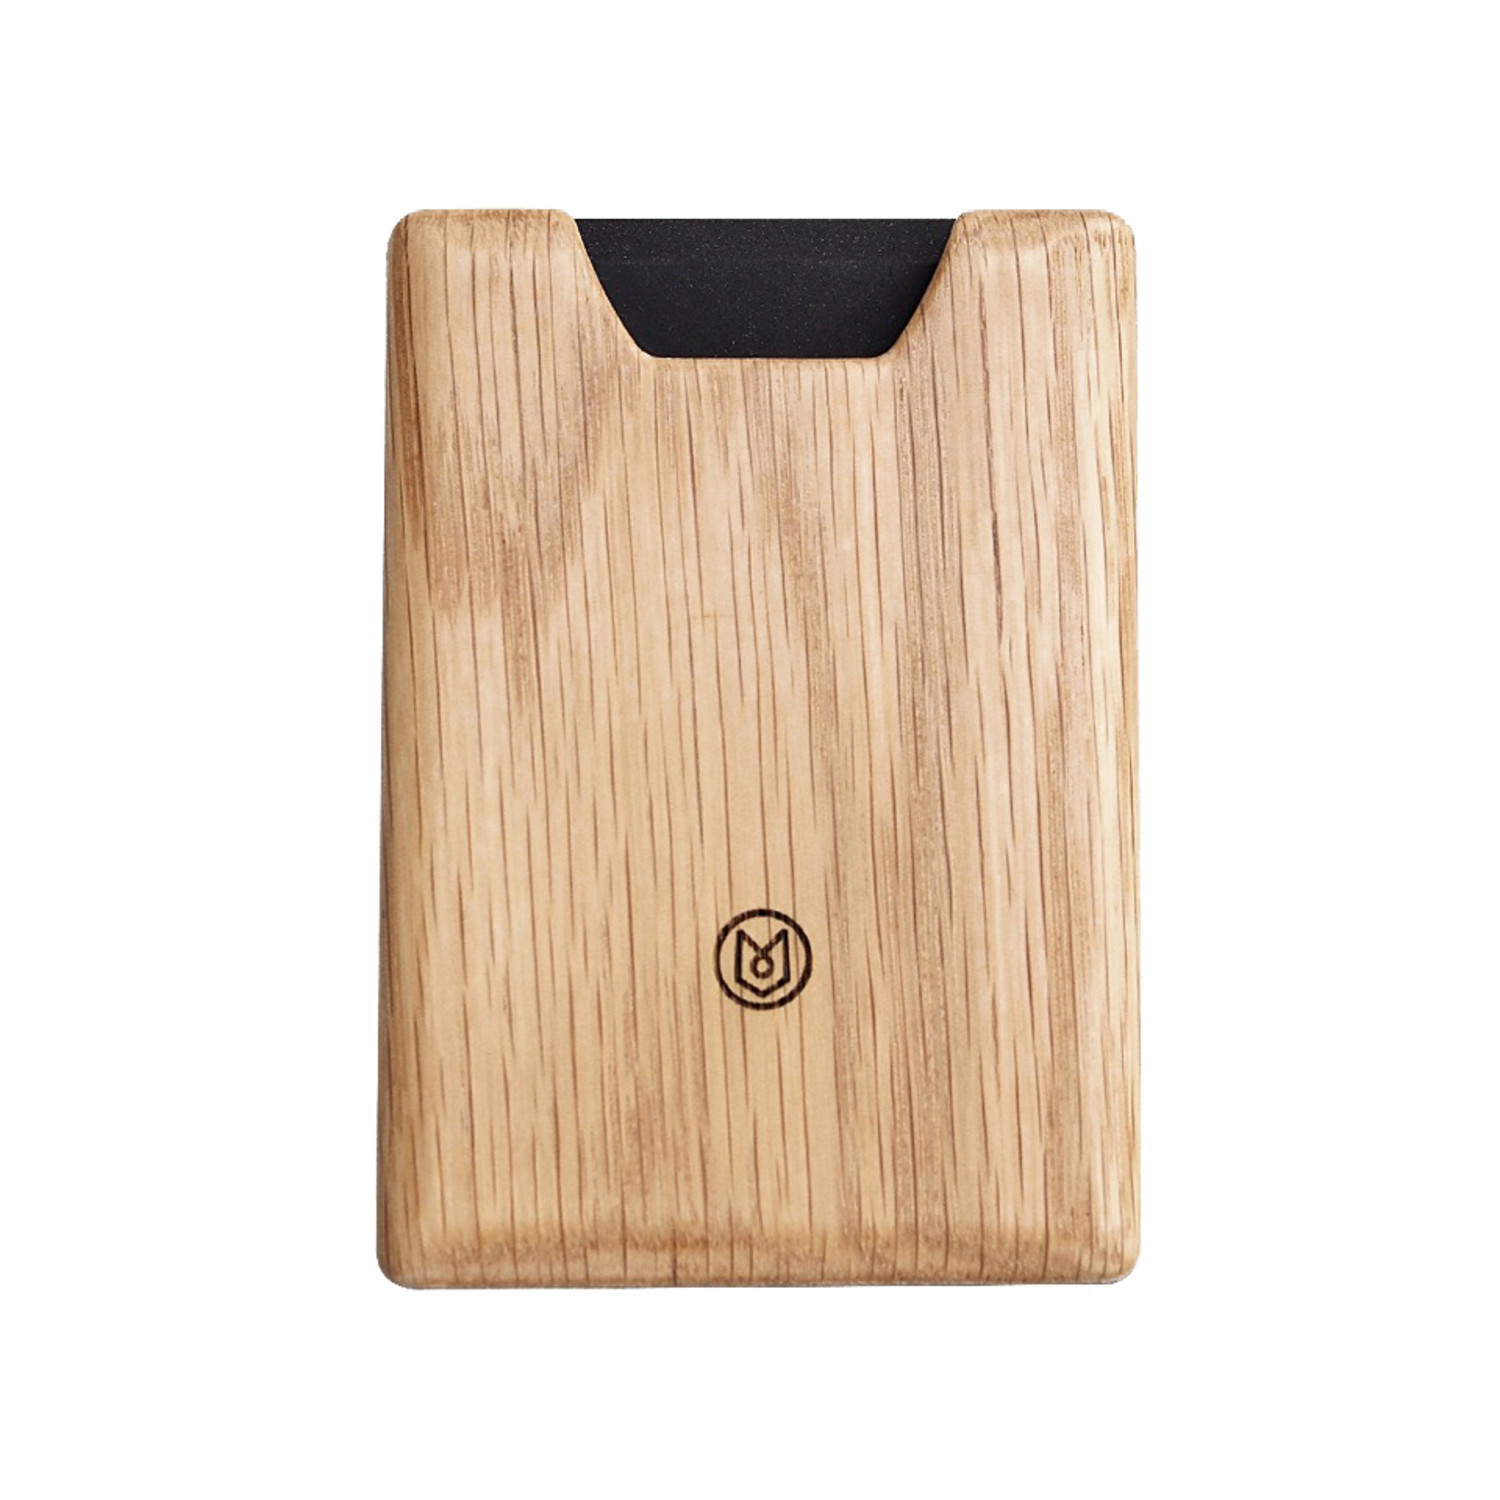 Union wood wallet white oak the union wallet by for What is touchofmodern